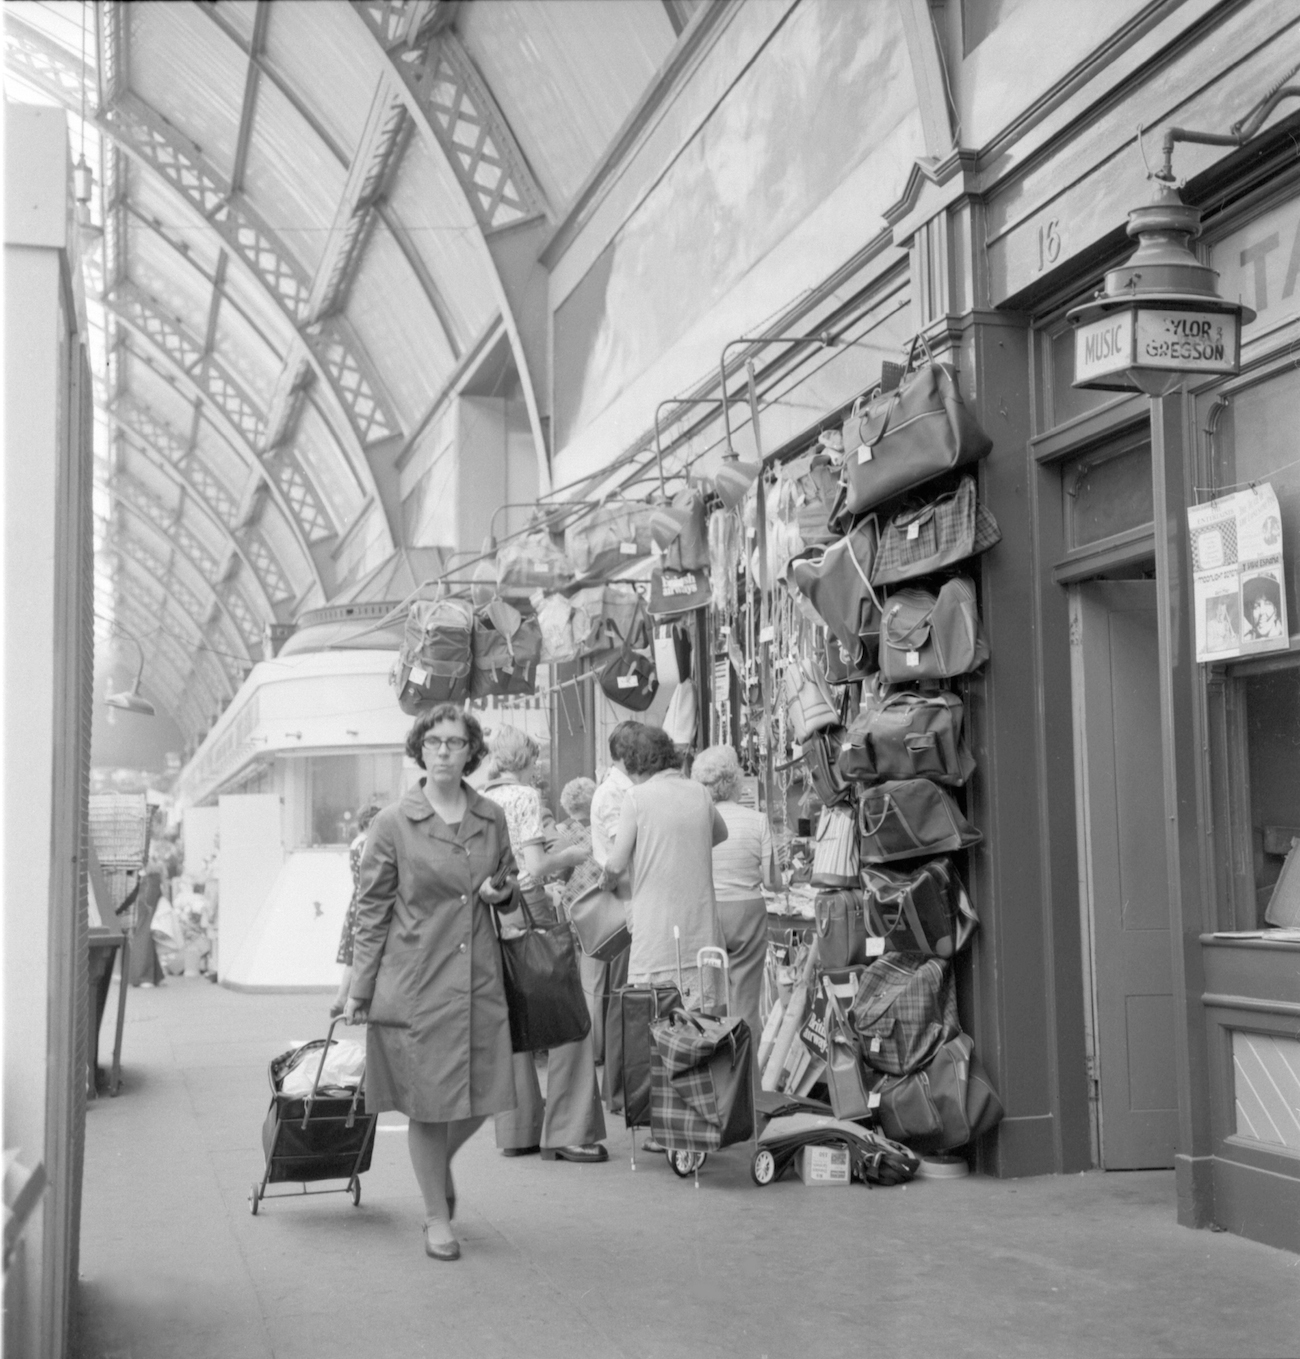 Grainger Market 1970s newcastle